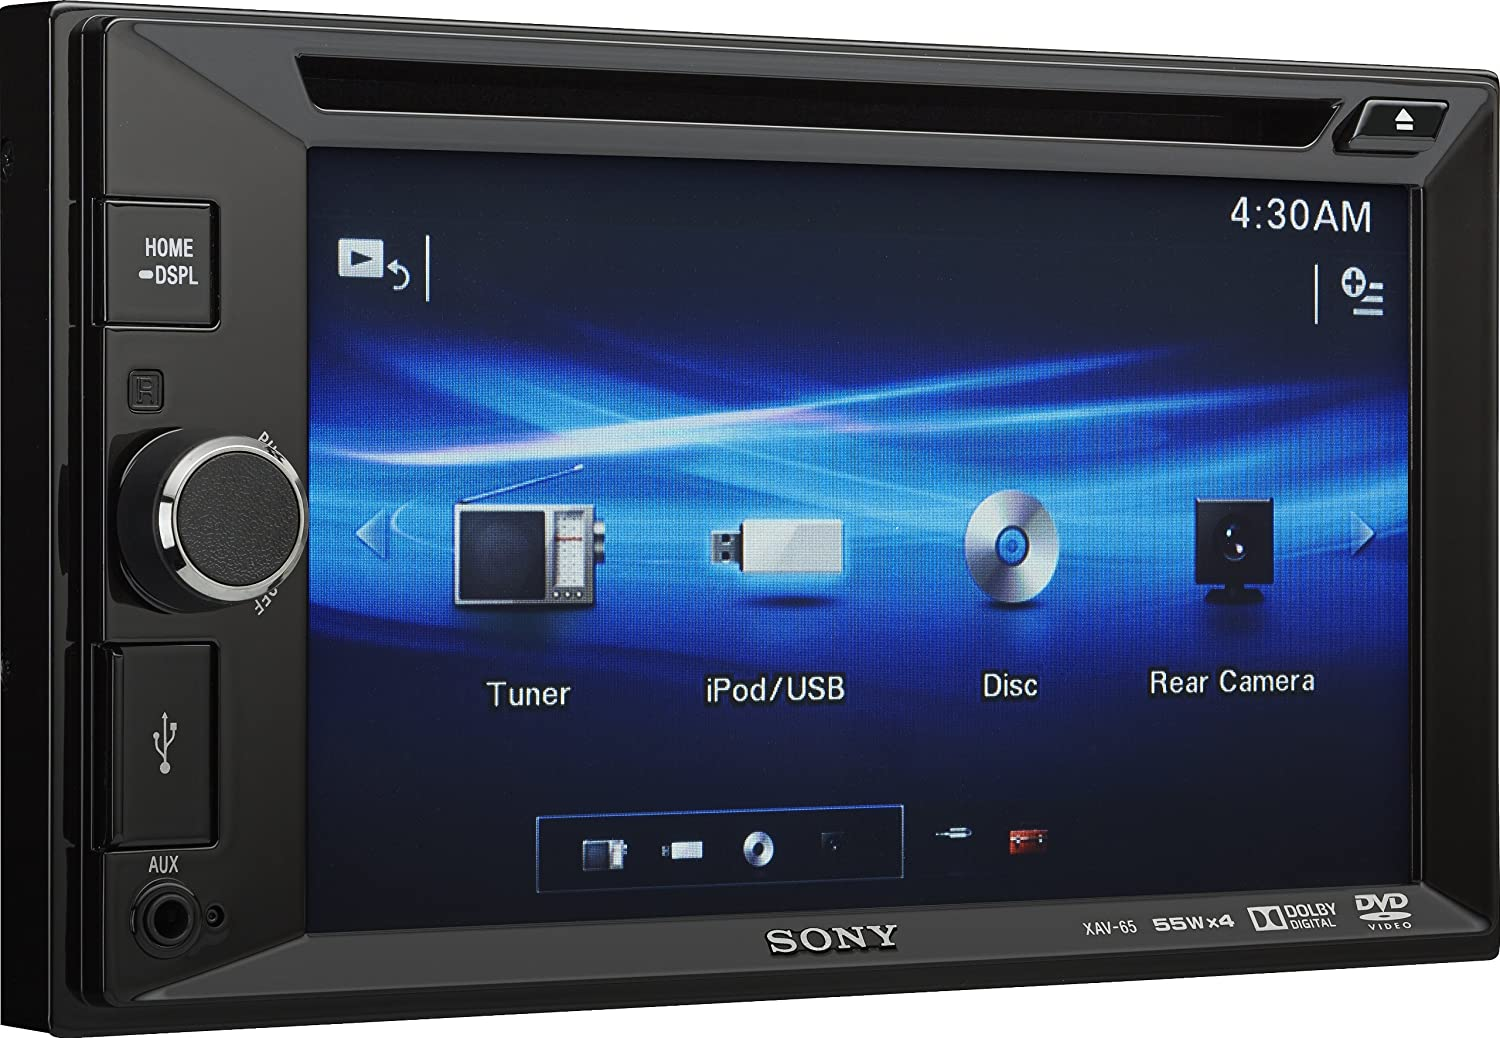 Sony Xav65 Video Receiver With Double Din 62 Inch Wvga Xav Wiring Harness Diagram Touch Screen Display Discontinued By Manufacturer Car Electronics